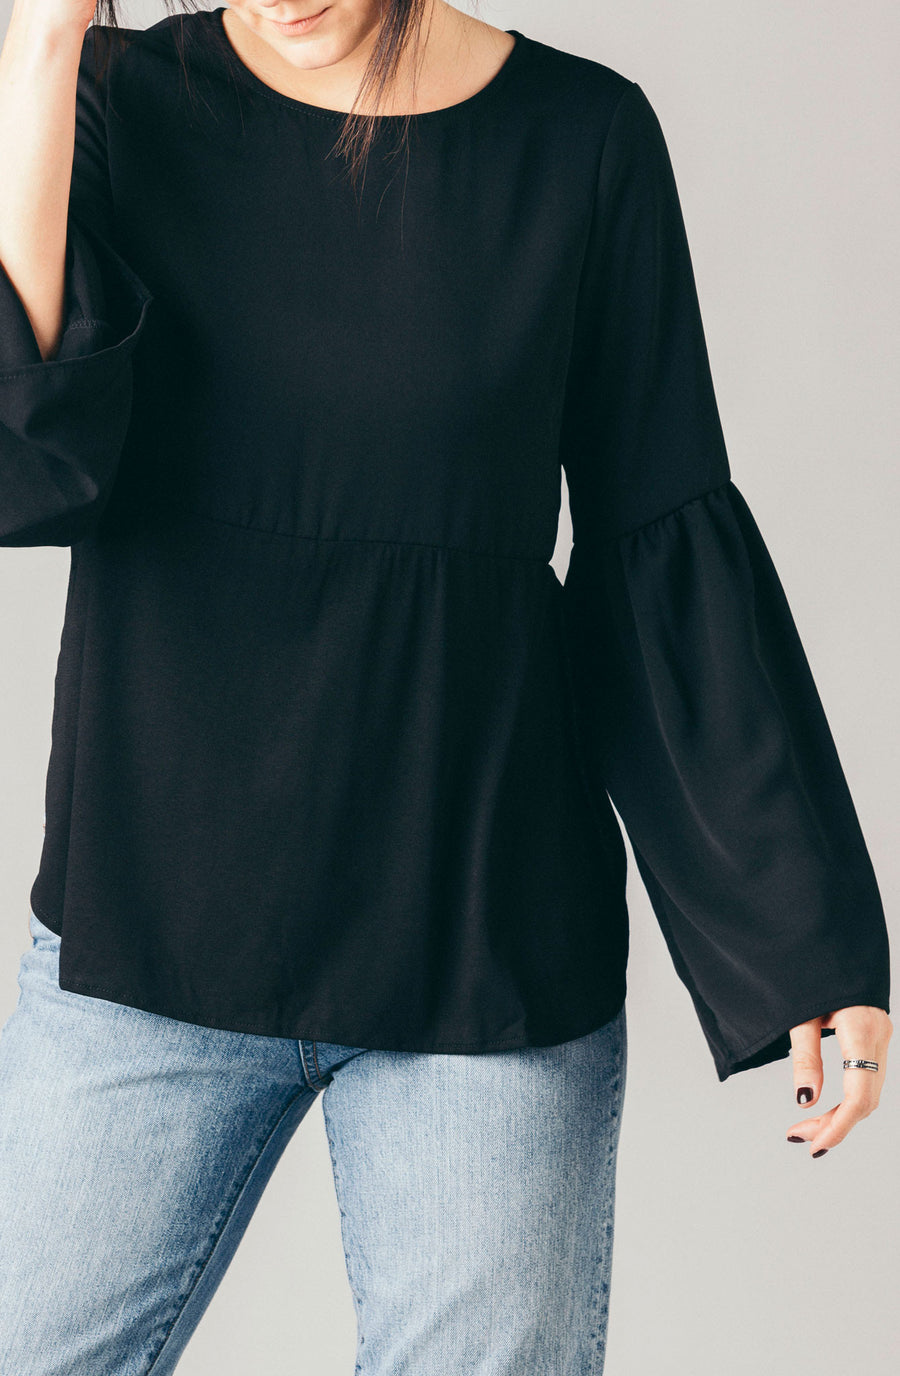 The Coverii black multi fabric jersey flowy blouse with long bell sleeves and double layer.